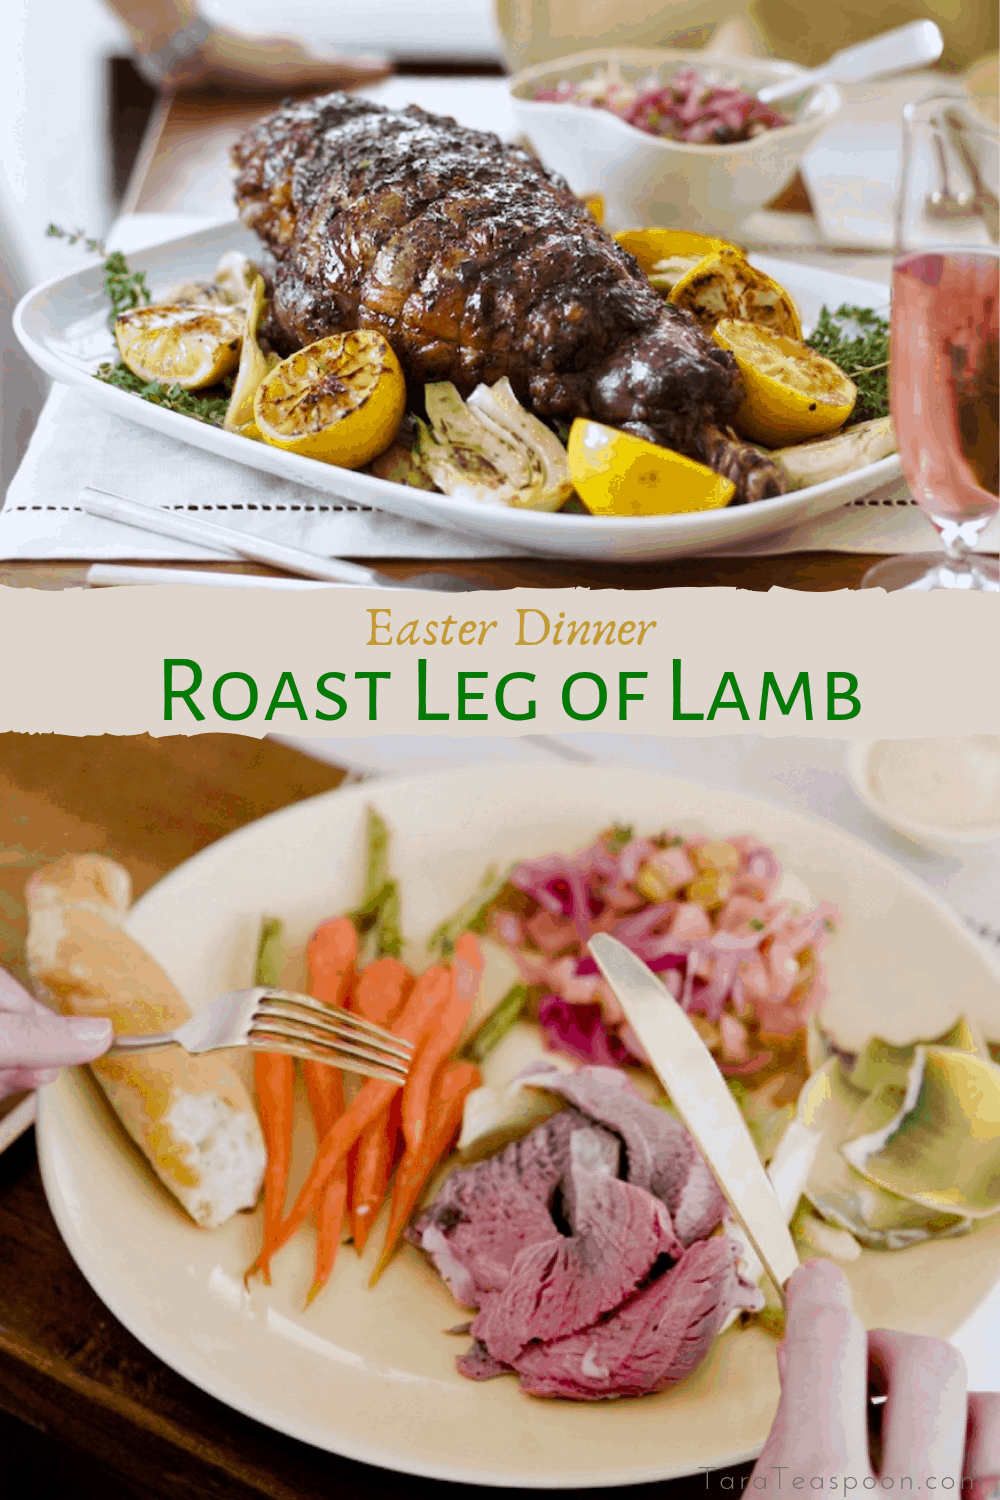 Roast leg of lamb and easter dinner plate pin